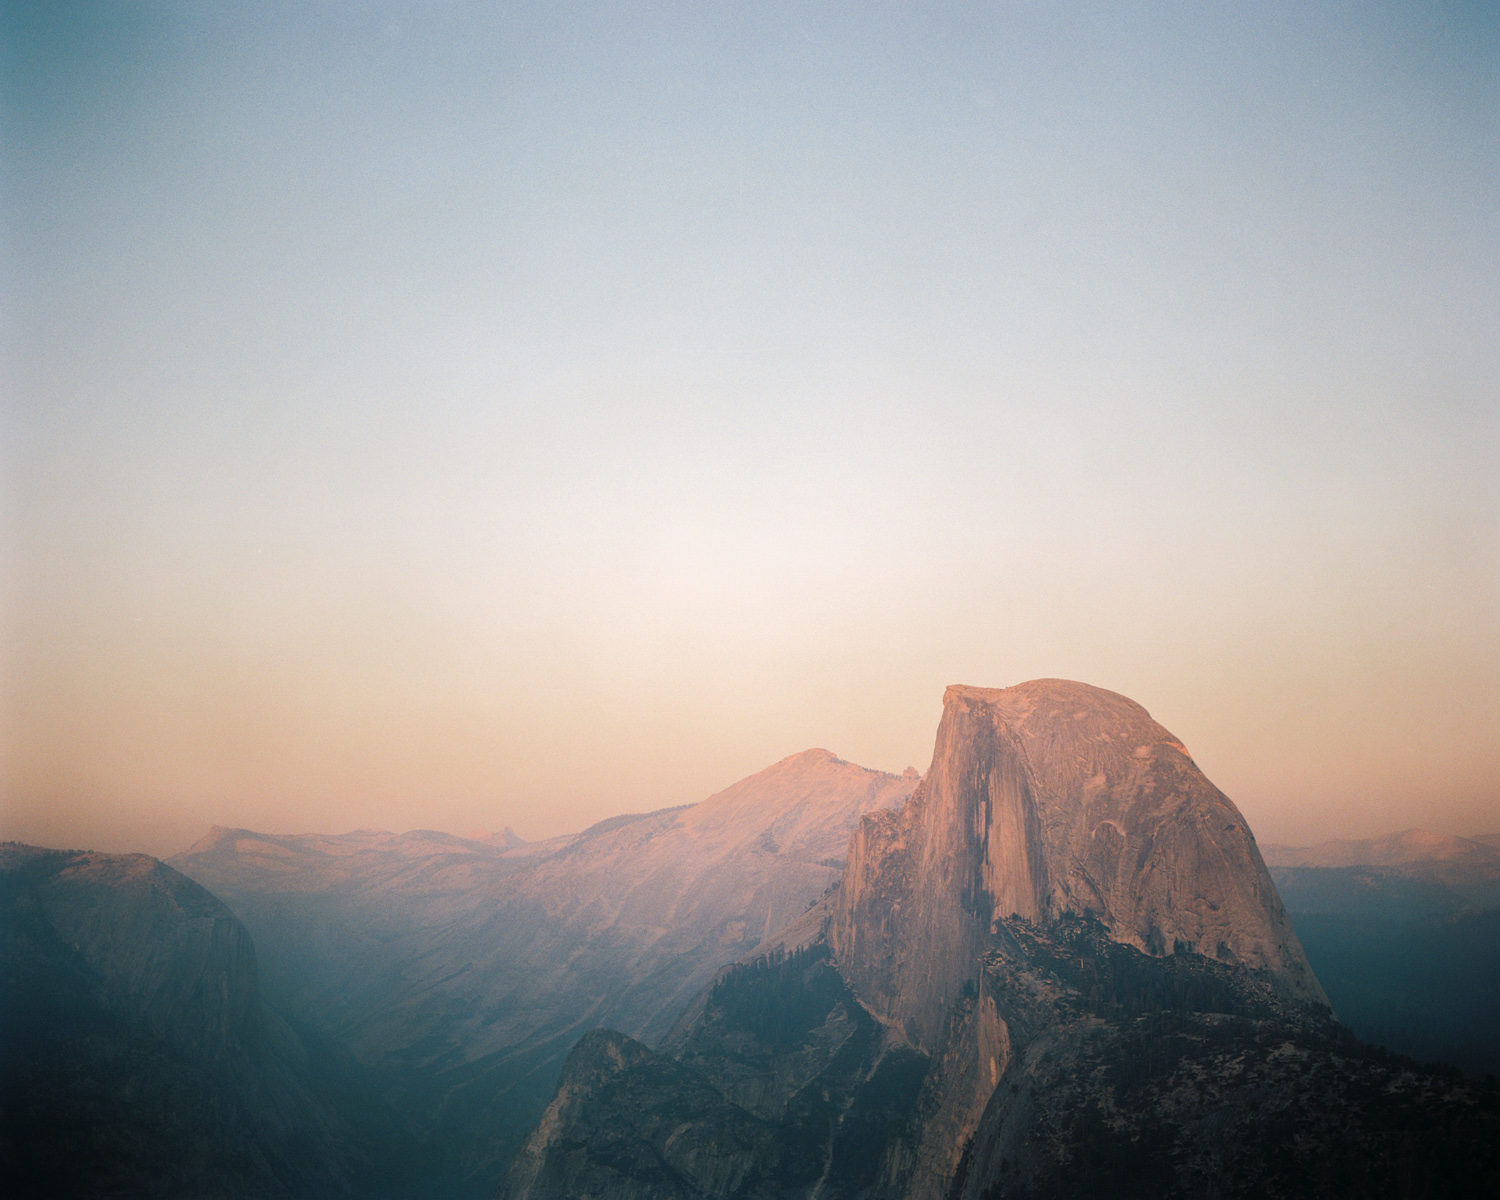 yosemite national park half dome peak from glacier point on fim after sunset.jpg